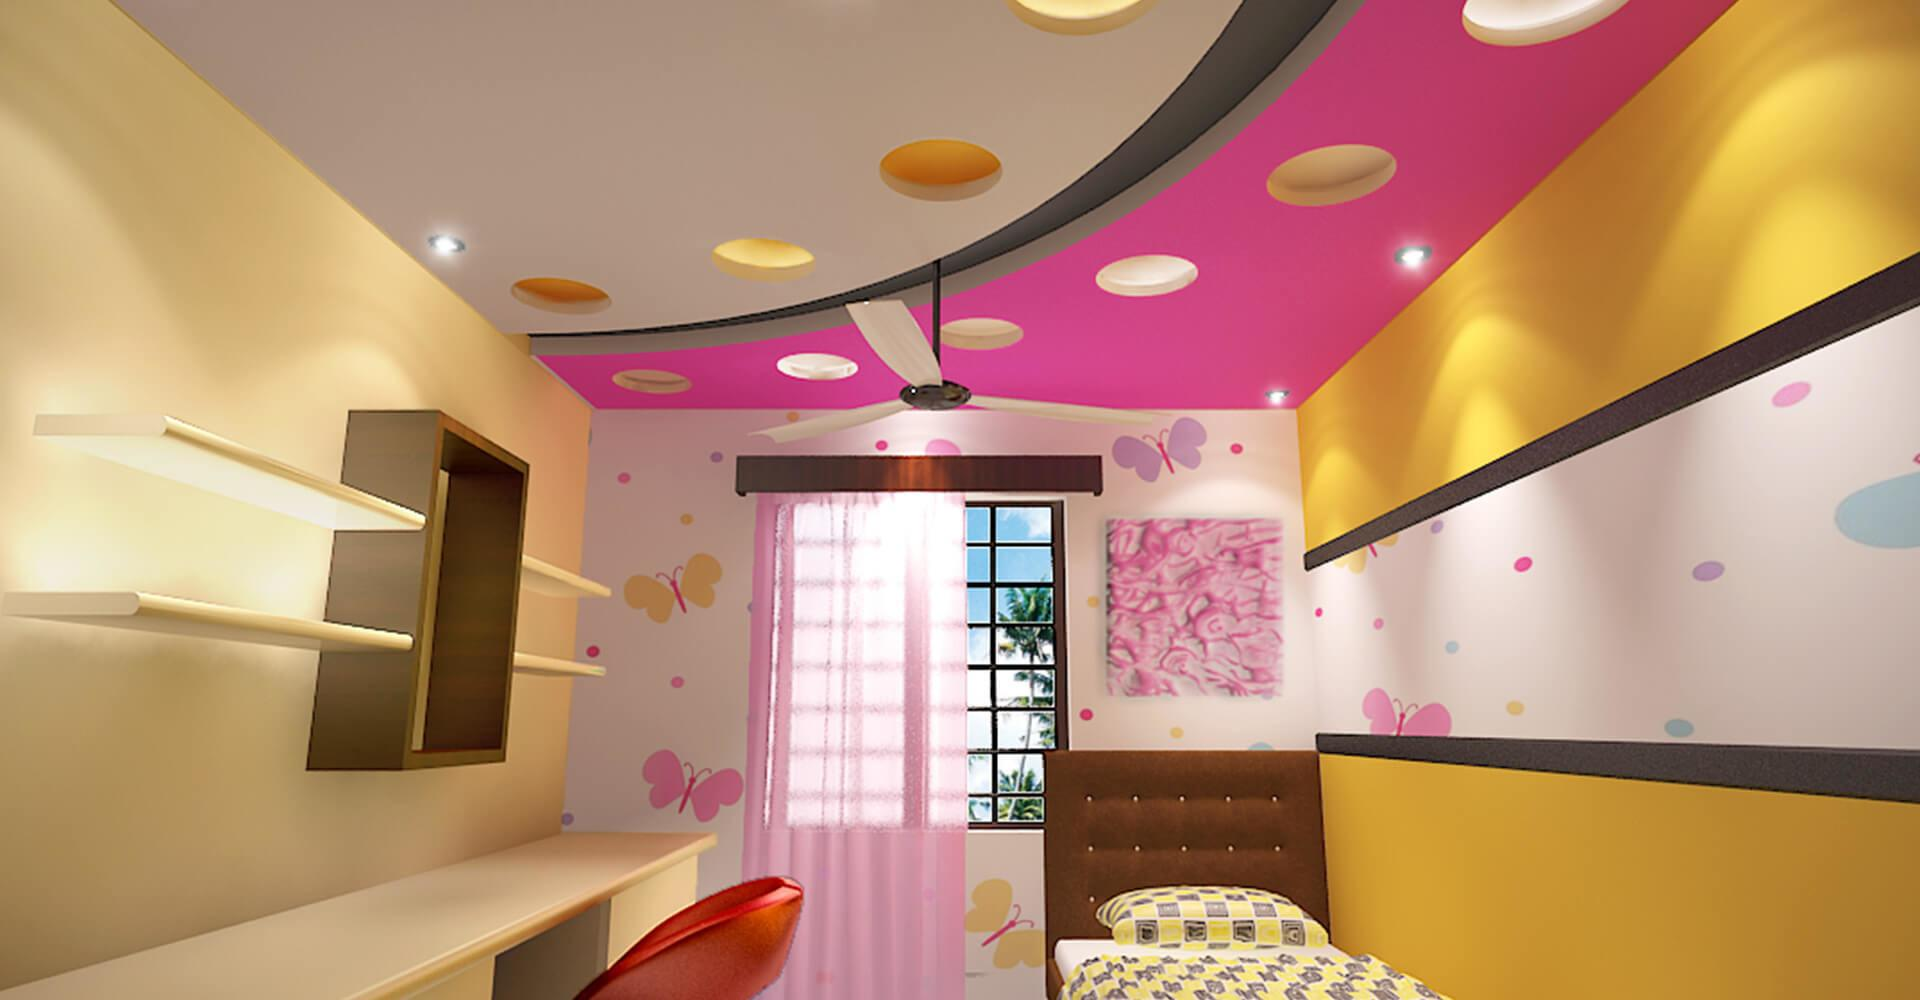 Residential False Ceiling Gypsum Board